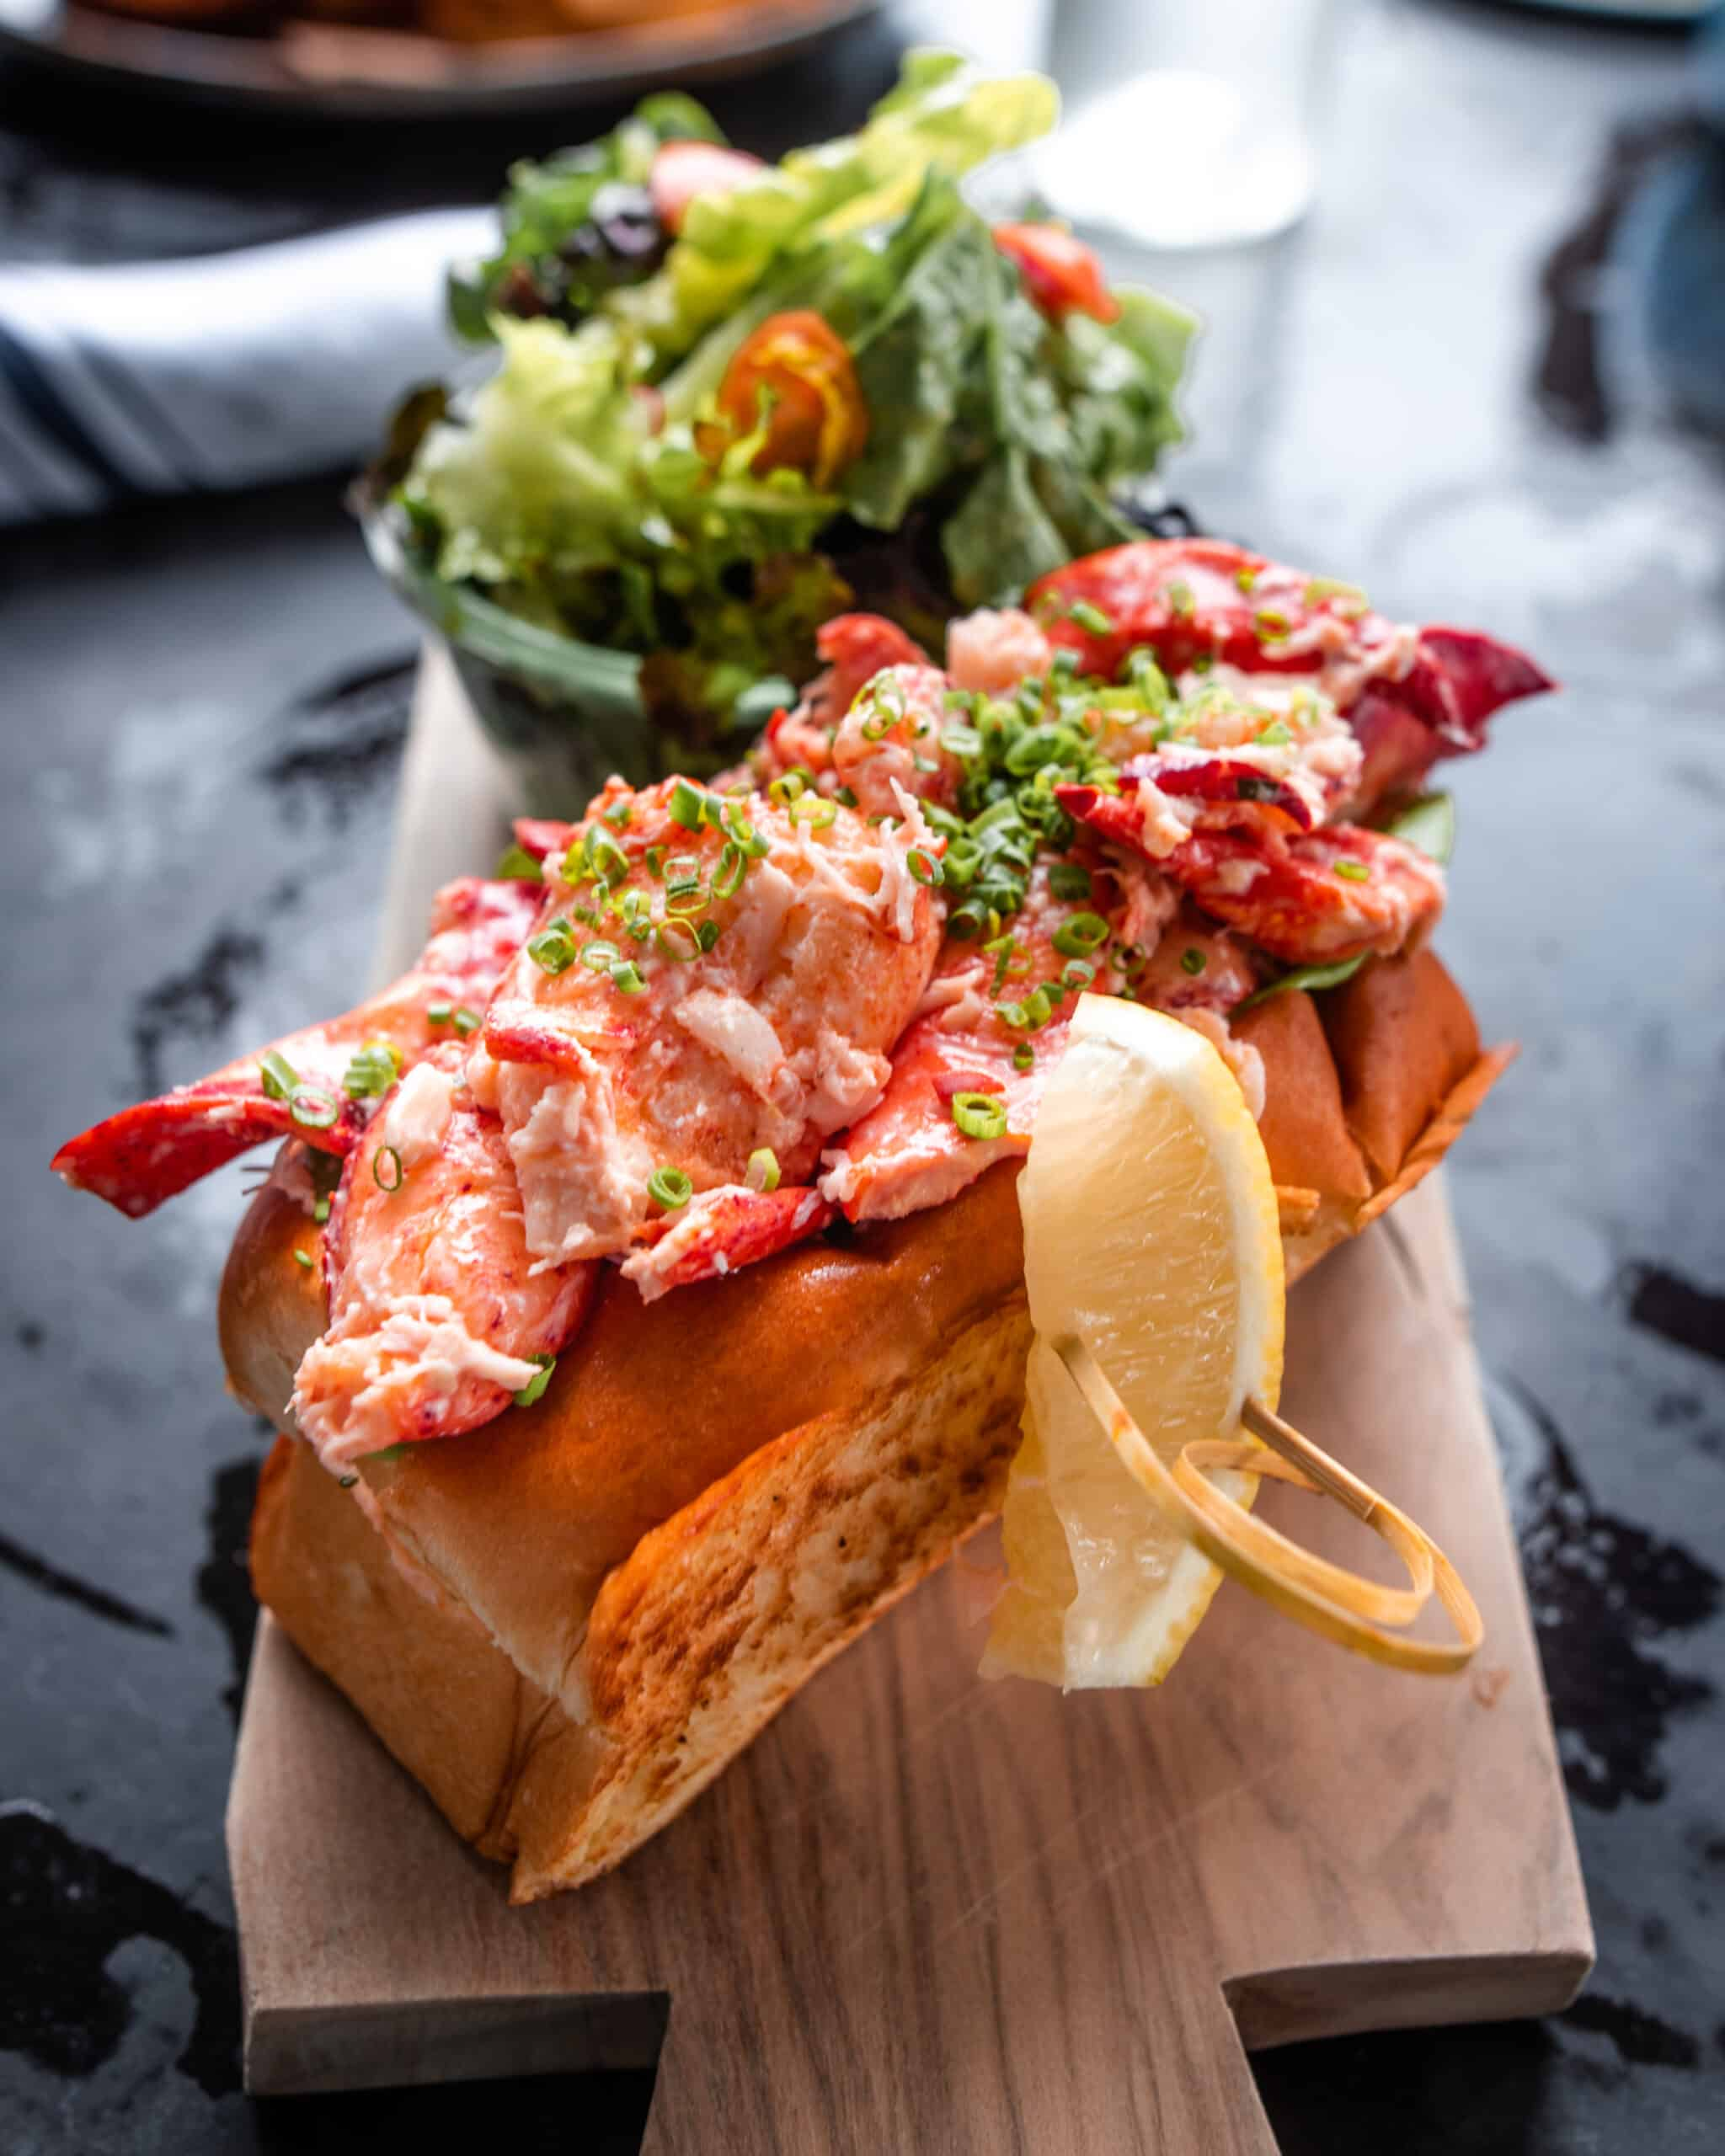 Chatham Bars Inn Lobster Roll